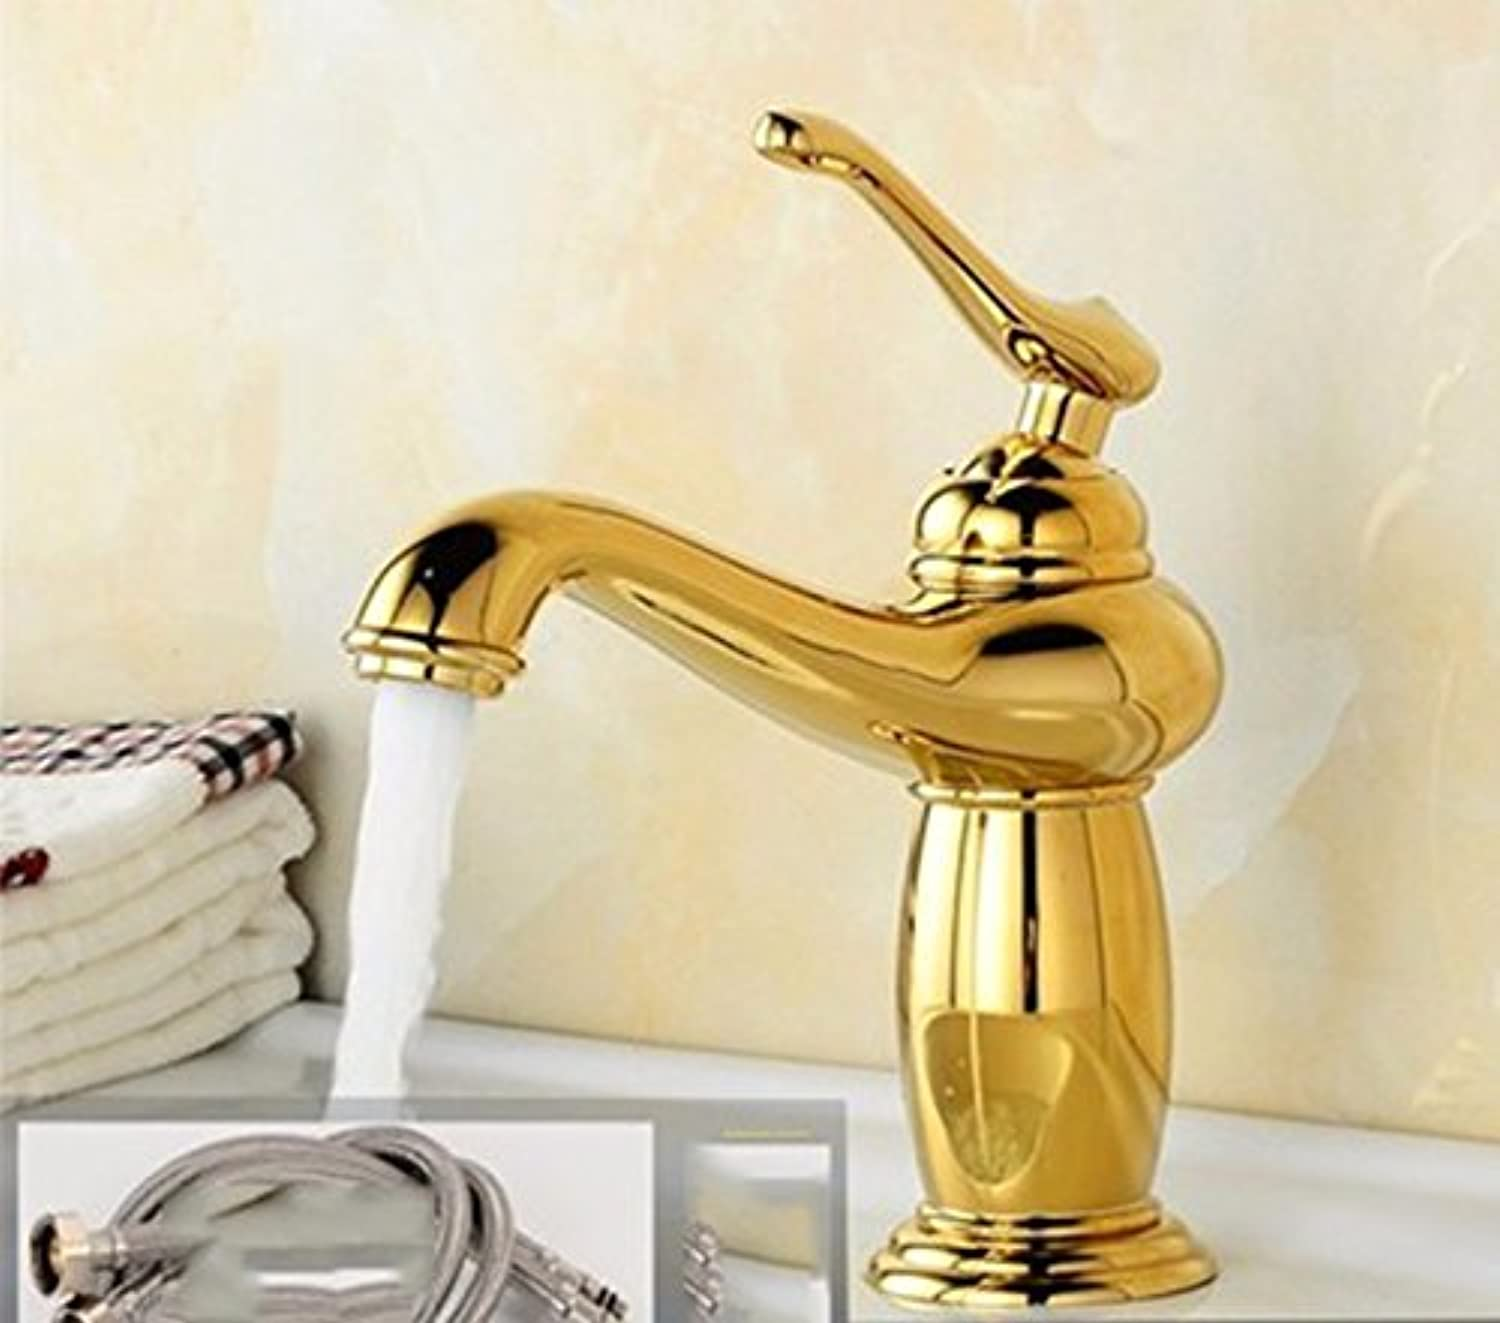 AWXJX European style retro style copper hot and cold toilets and washing the face Single Hole a raised bathroom water tap